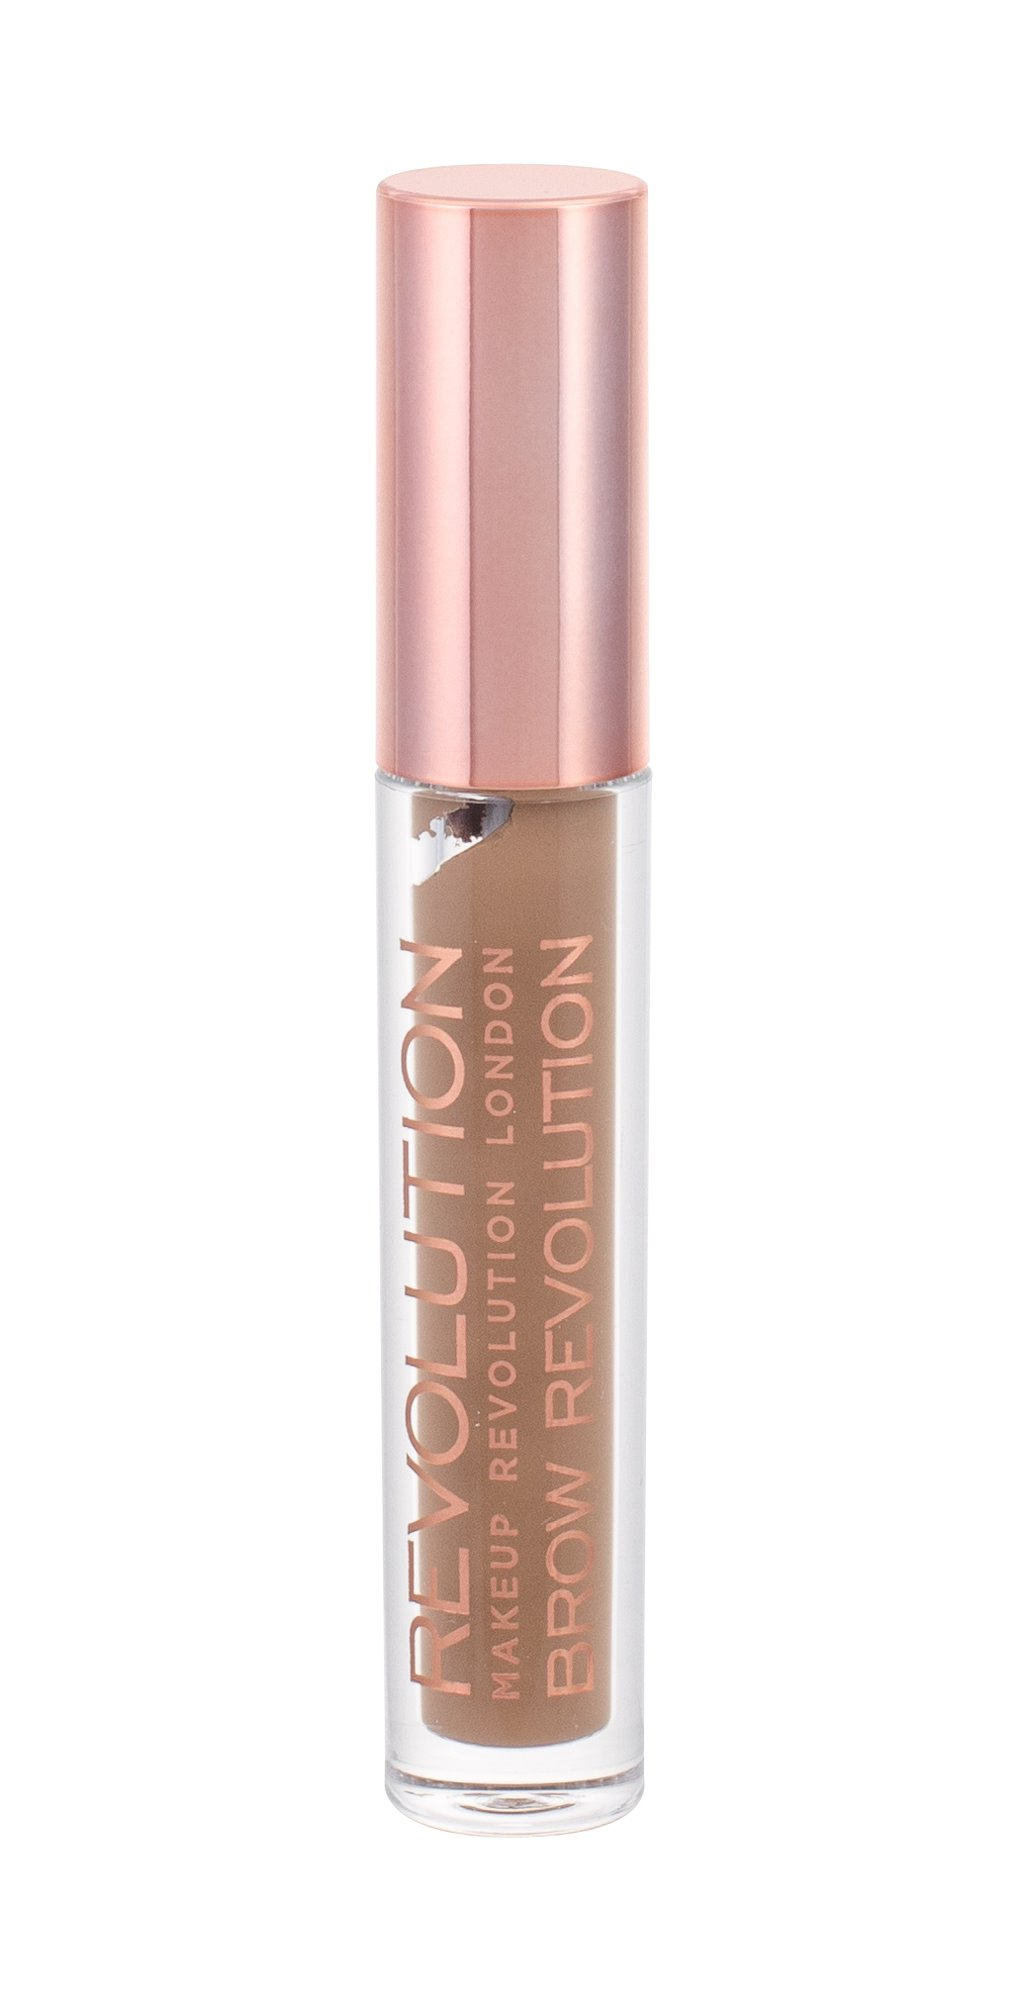 Makeup Revolution London Brow Revolution, Úprava obočia 3,8g